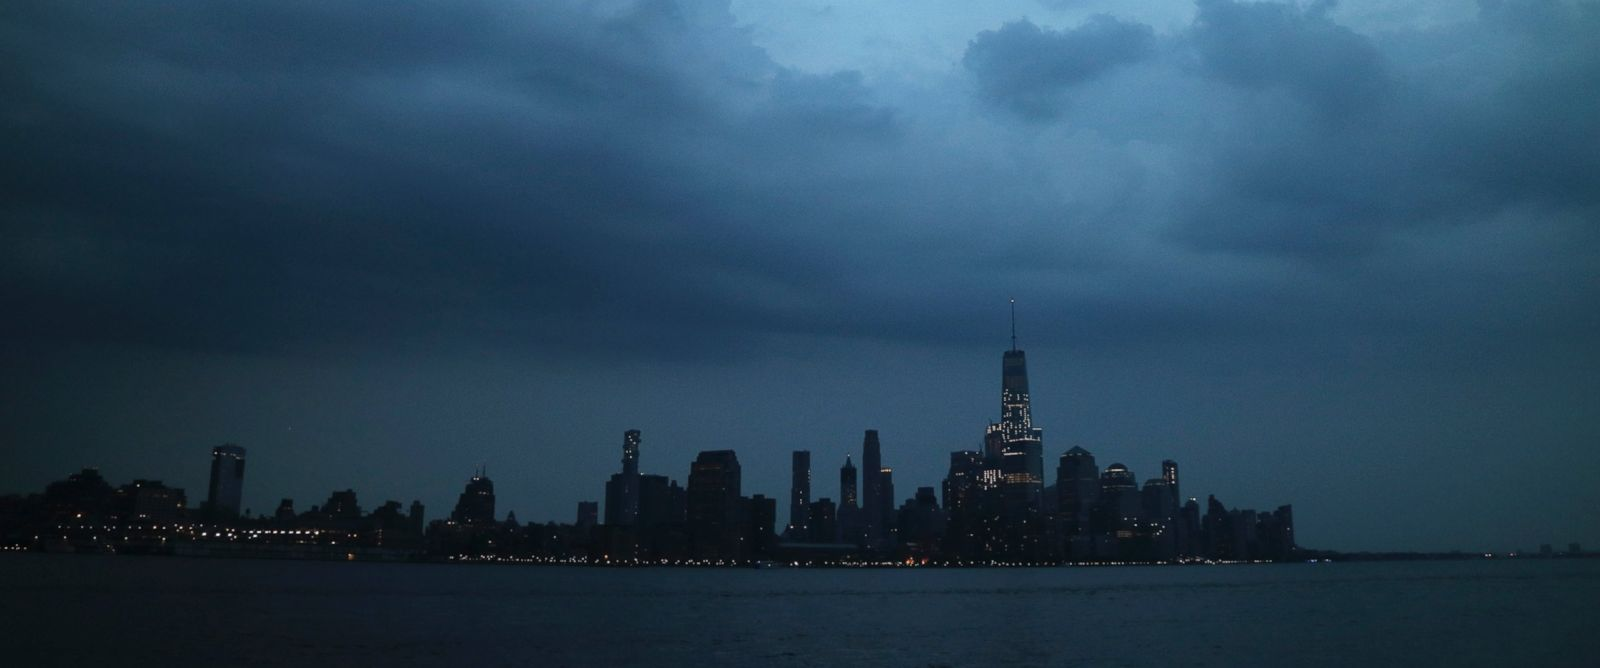 clouds over new york - photo #22